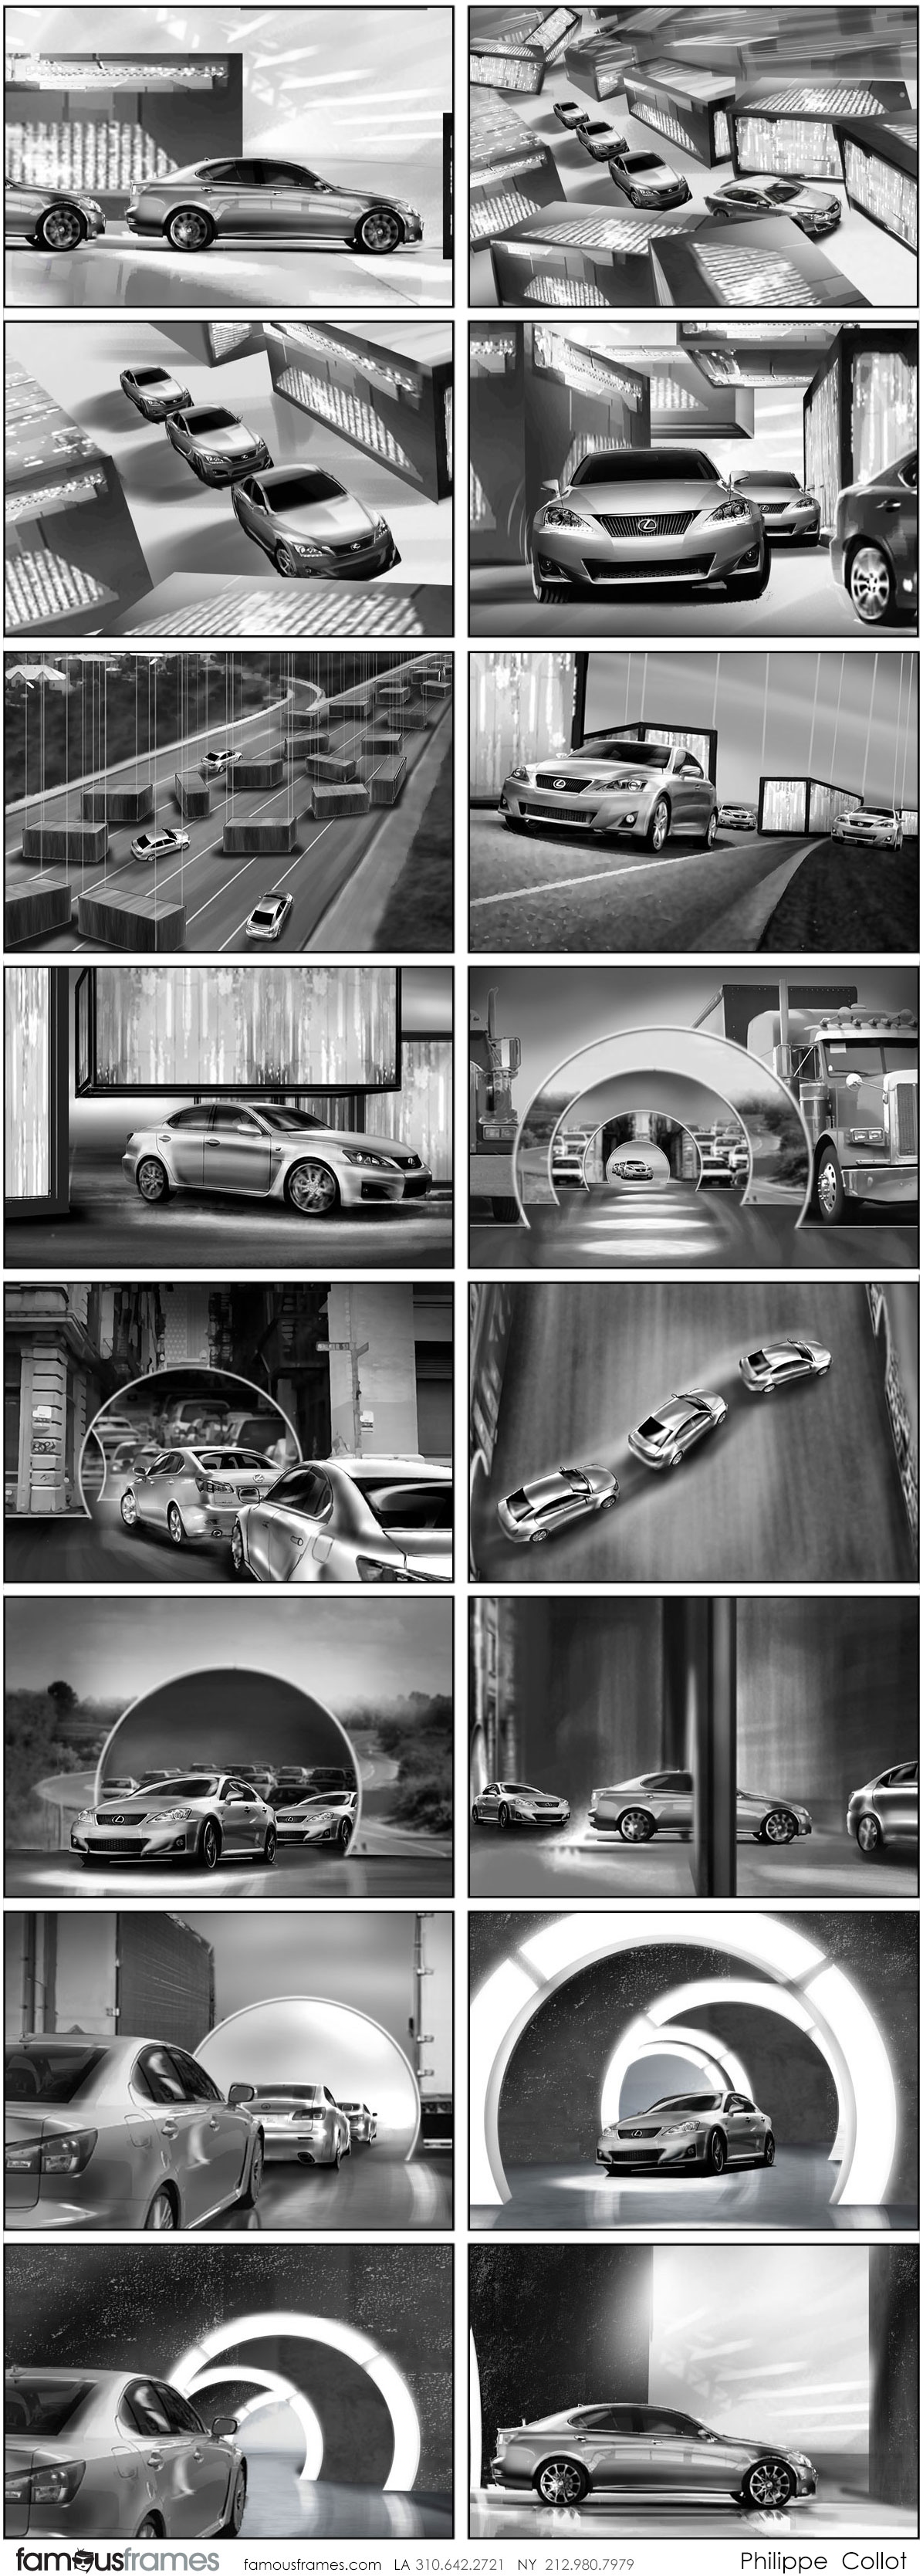 Philippe Collot*'s Vehicles storyboard art (Image #113_24_1494462095)